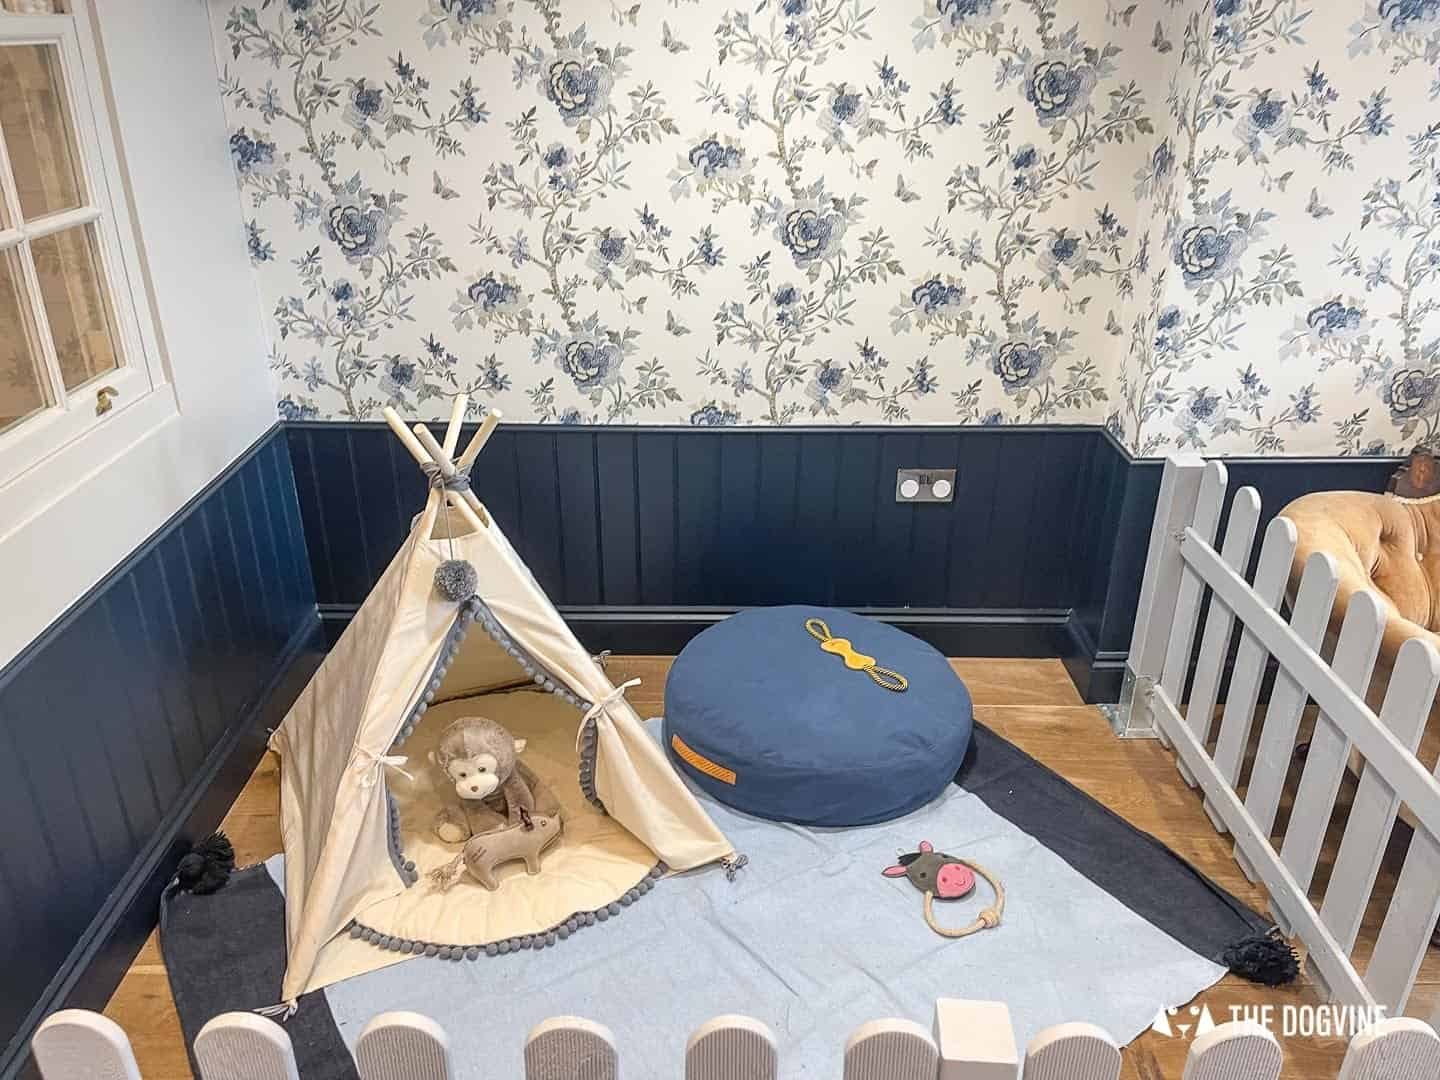 The daycare and creche at the Townhouse